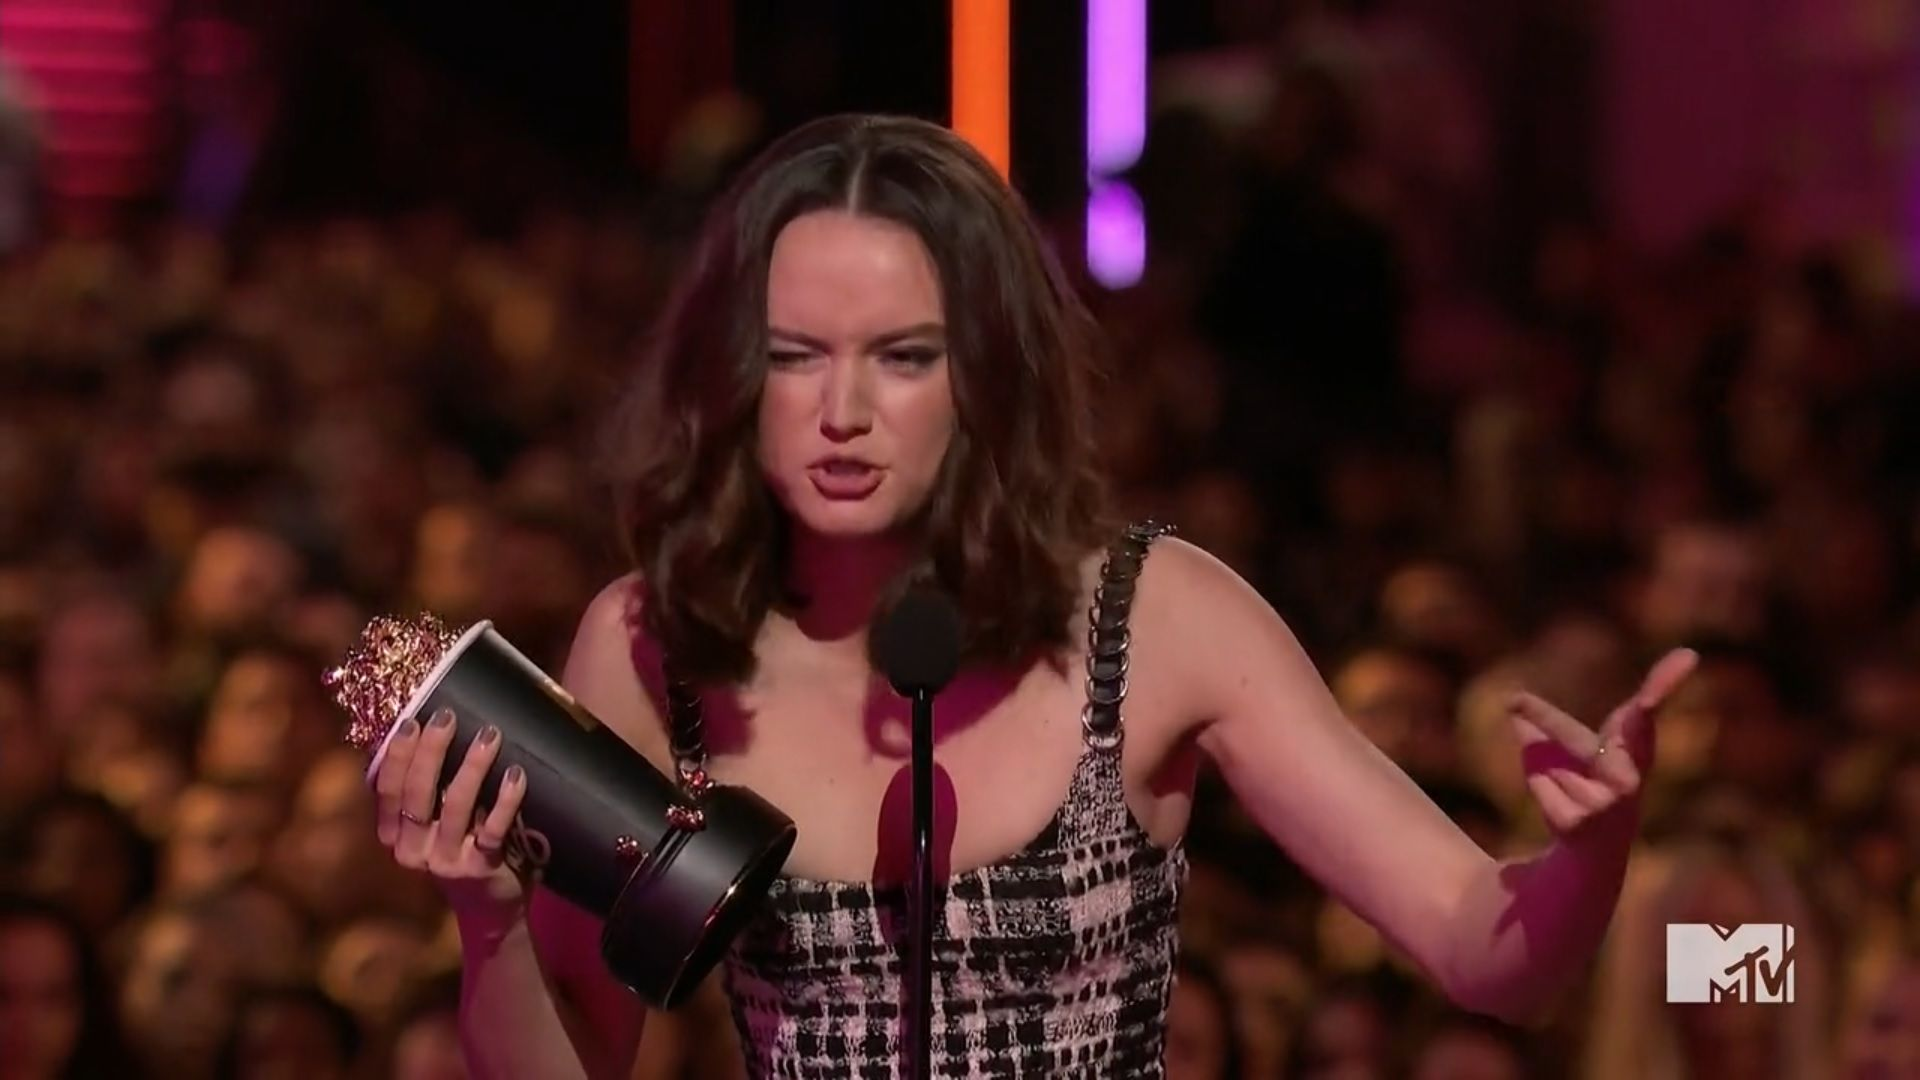 Daisy Ridley not sure if she can trust the fart mid speech.